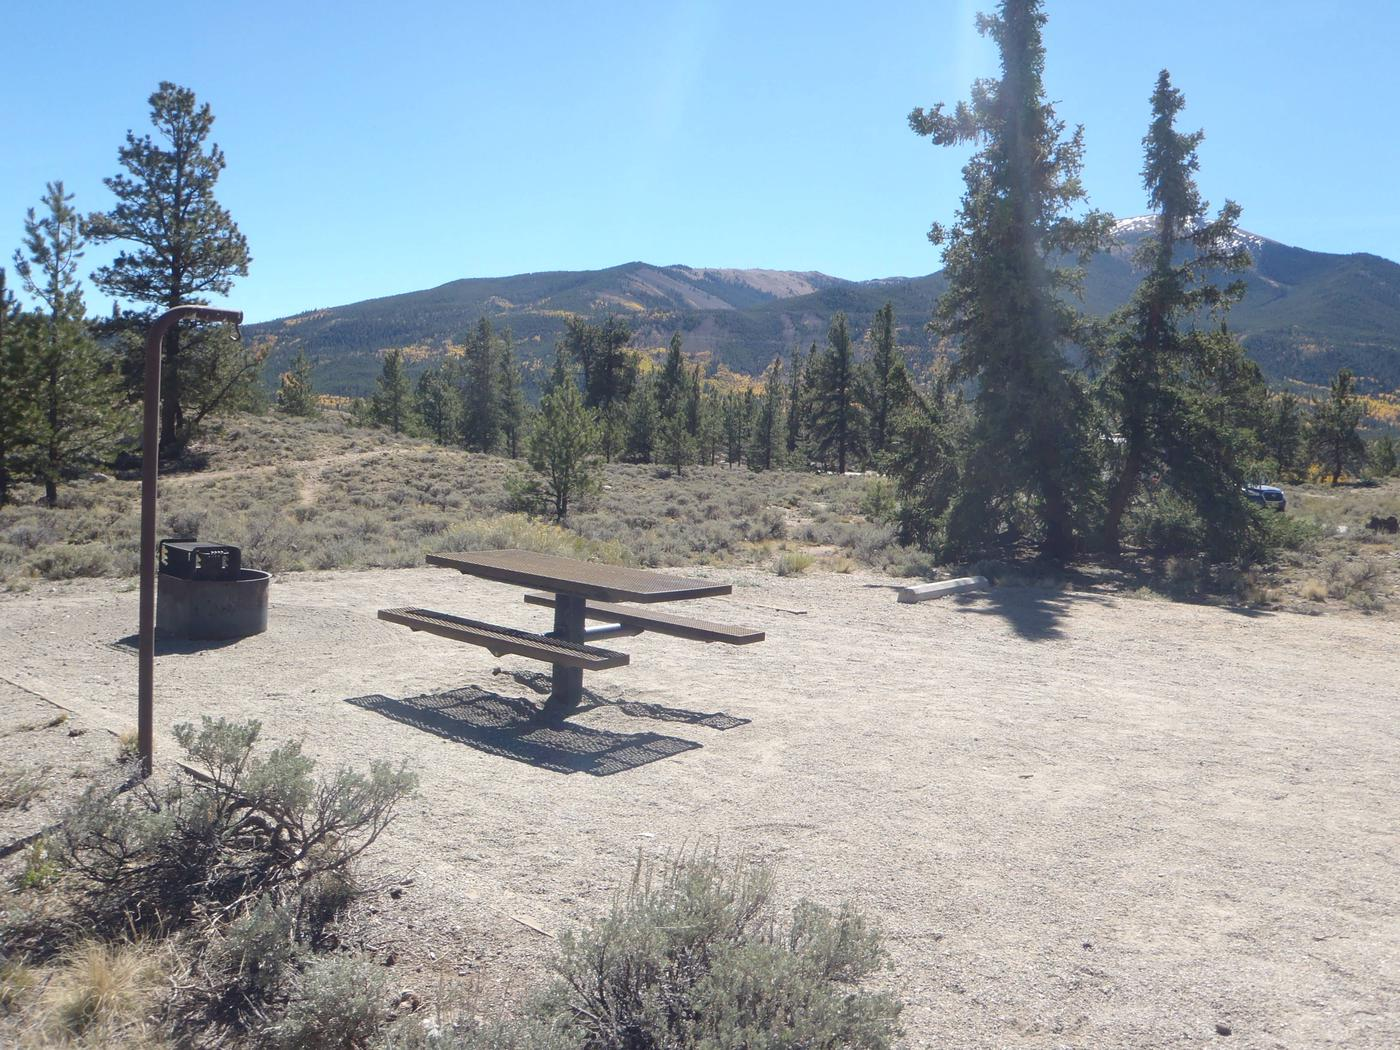 White Star Campground, site 21 picnic table and fire ring 2